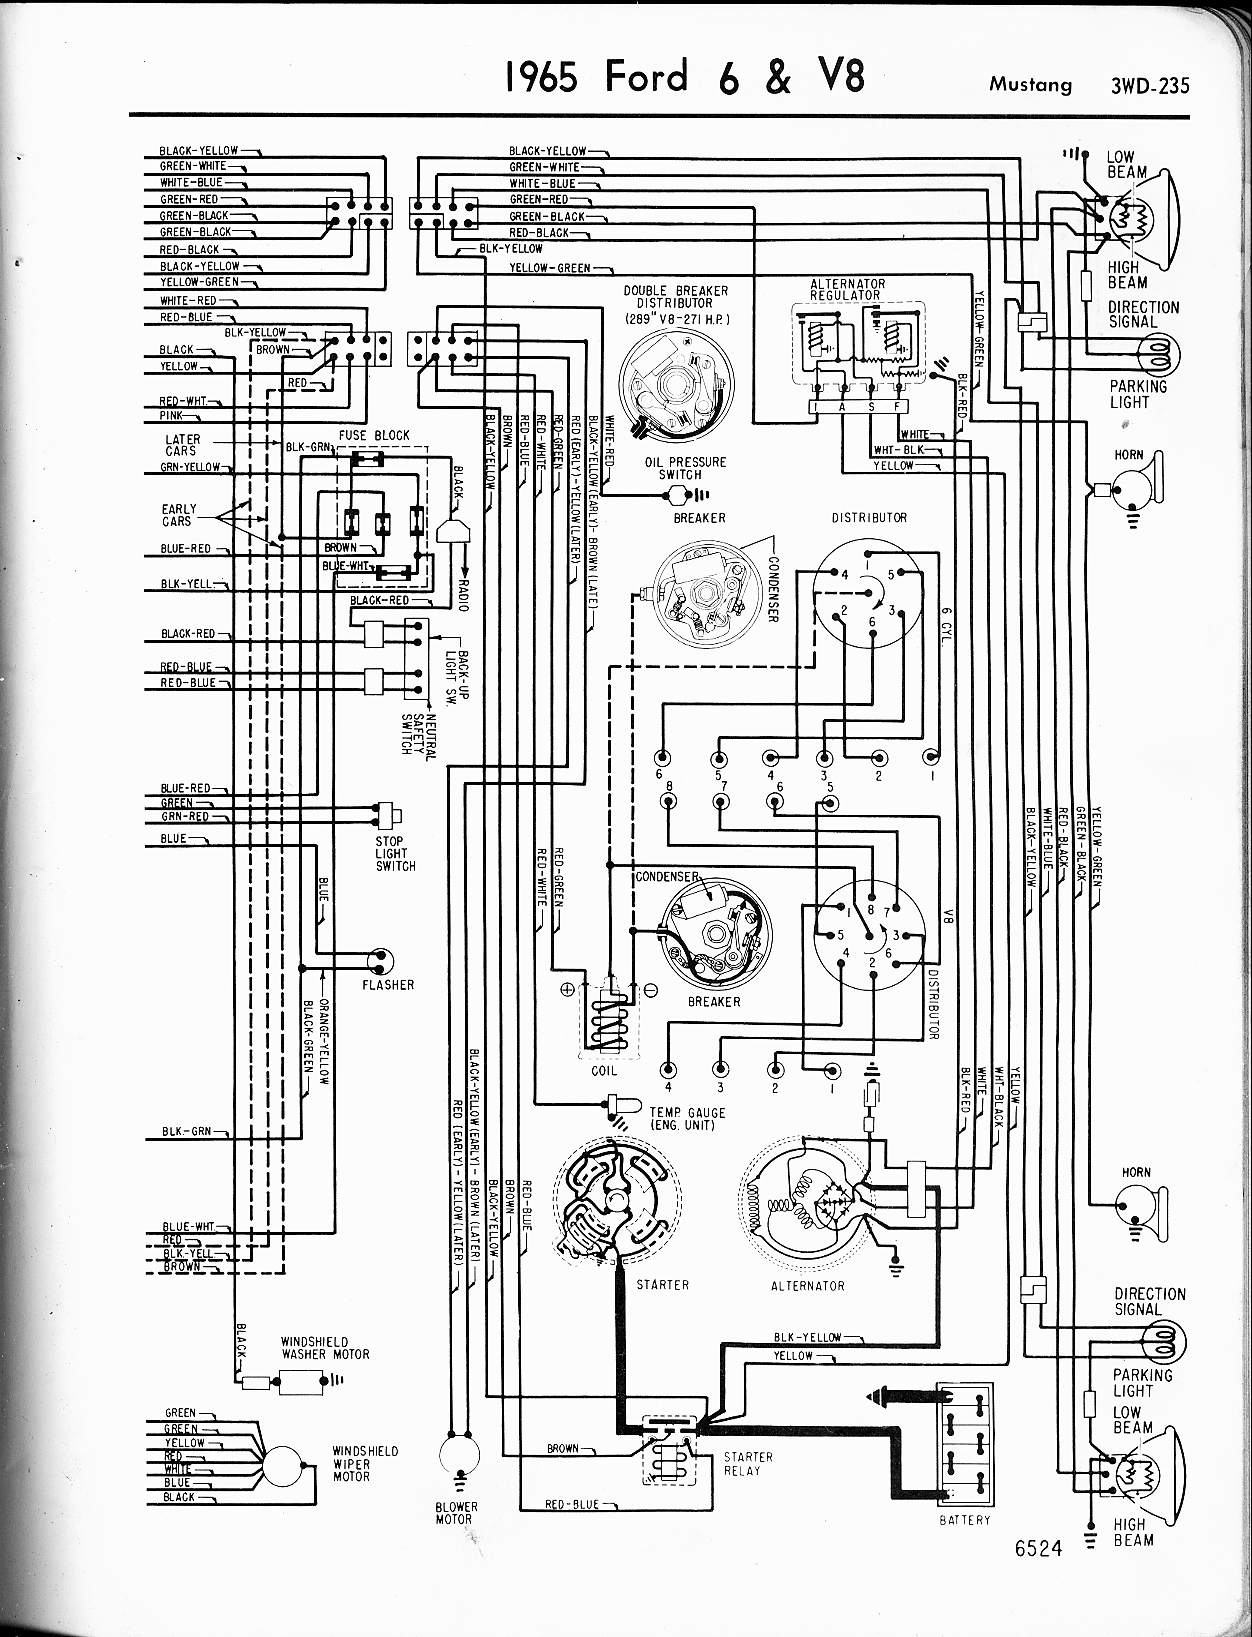 89 Mustang Fuse Diagram Worksheet And Wiring 1989 Ford Box Turn Signal Detailed Schematics Rh Jvpacks Com 2006